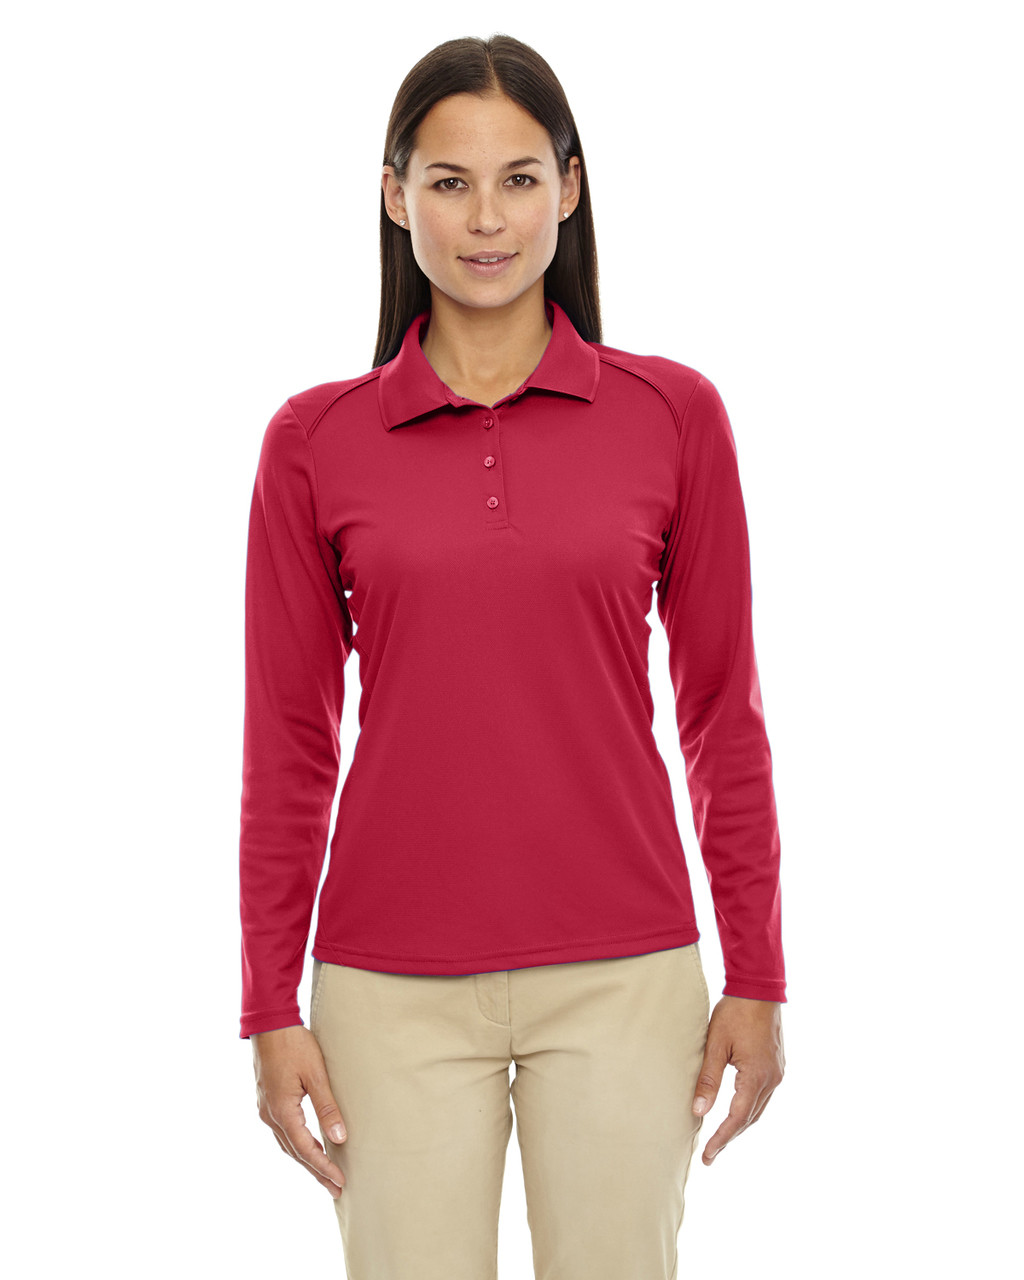 Classic Red 75111 Ash City - Extreme Eperformance Ladies' Long-Sleeve Polo Shirt